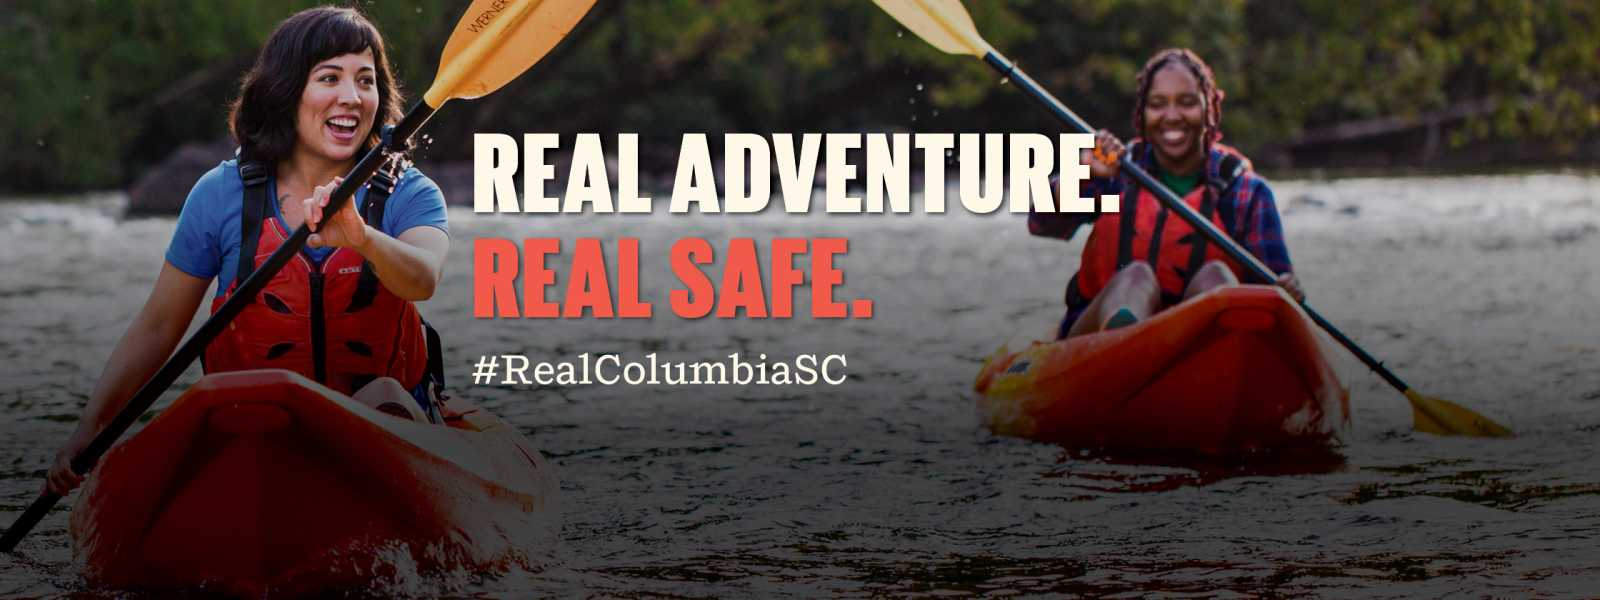 Real Adventure. Real Safe.